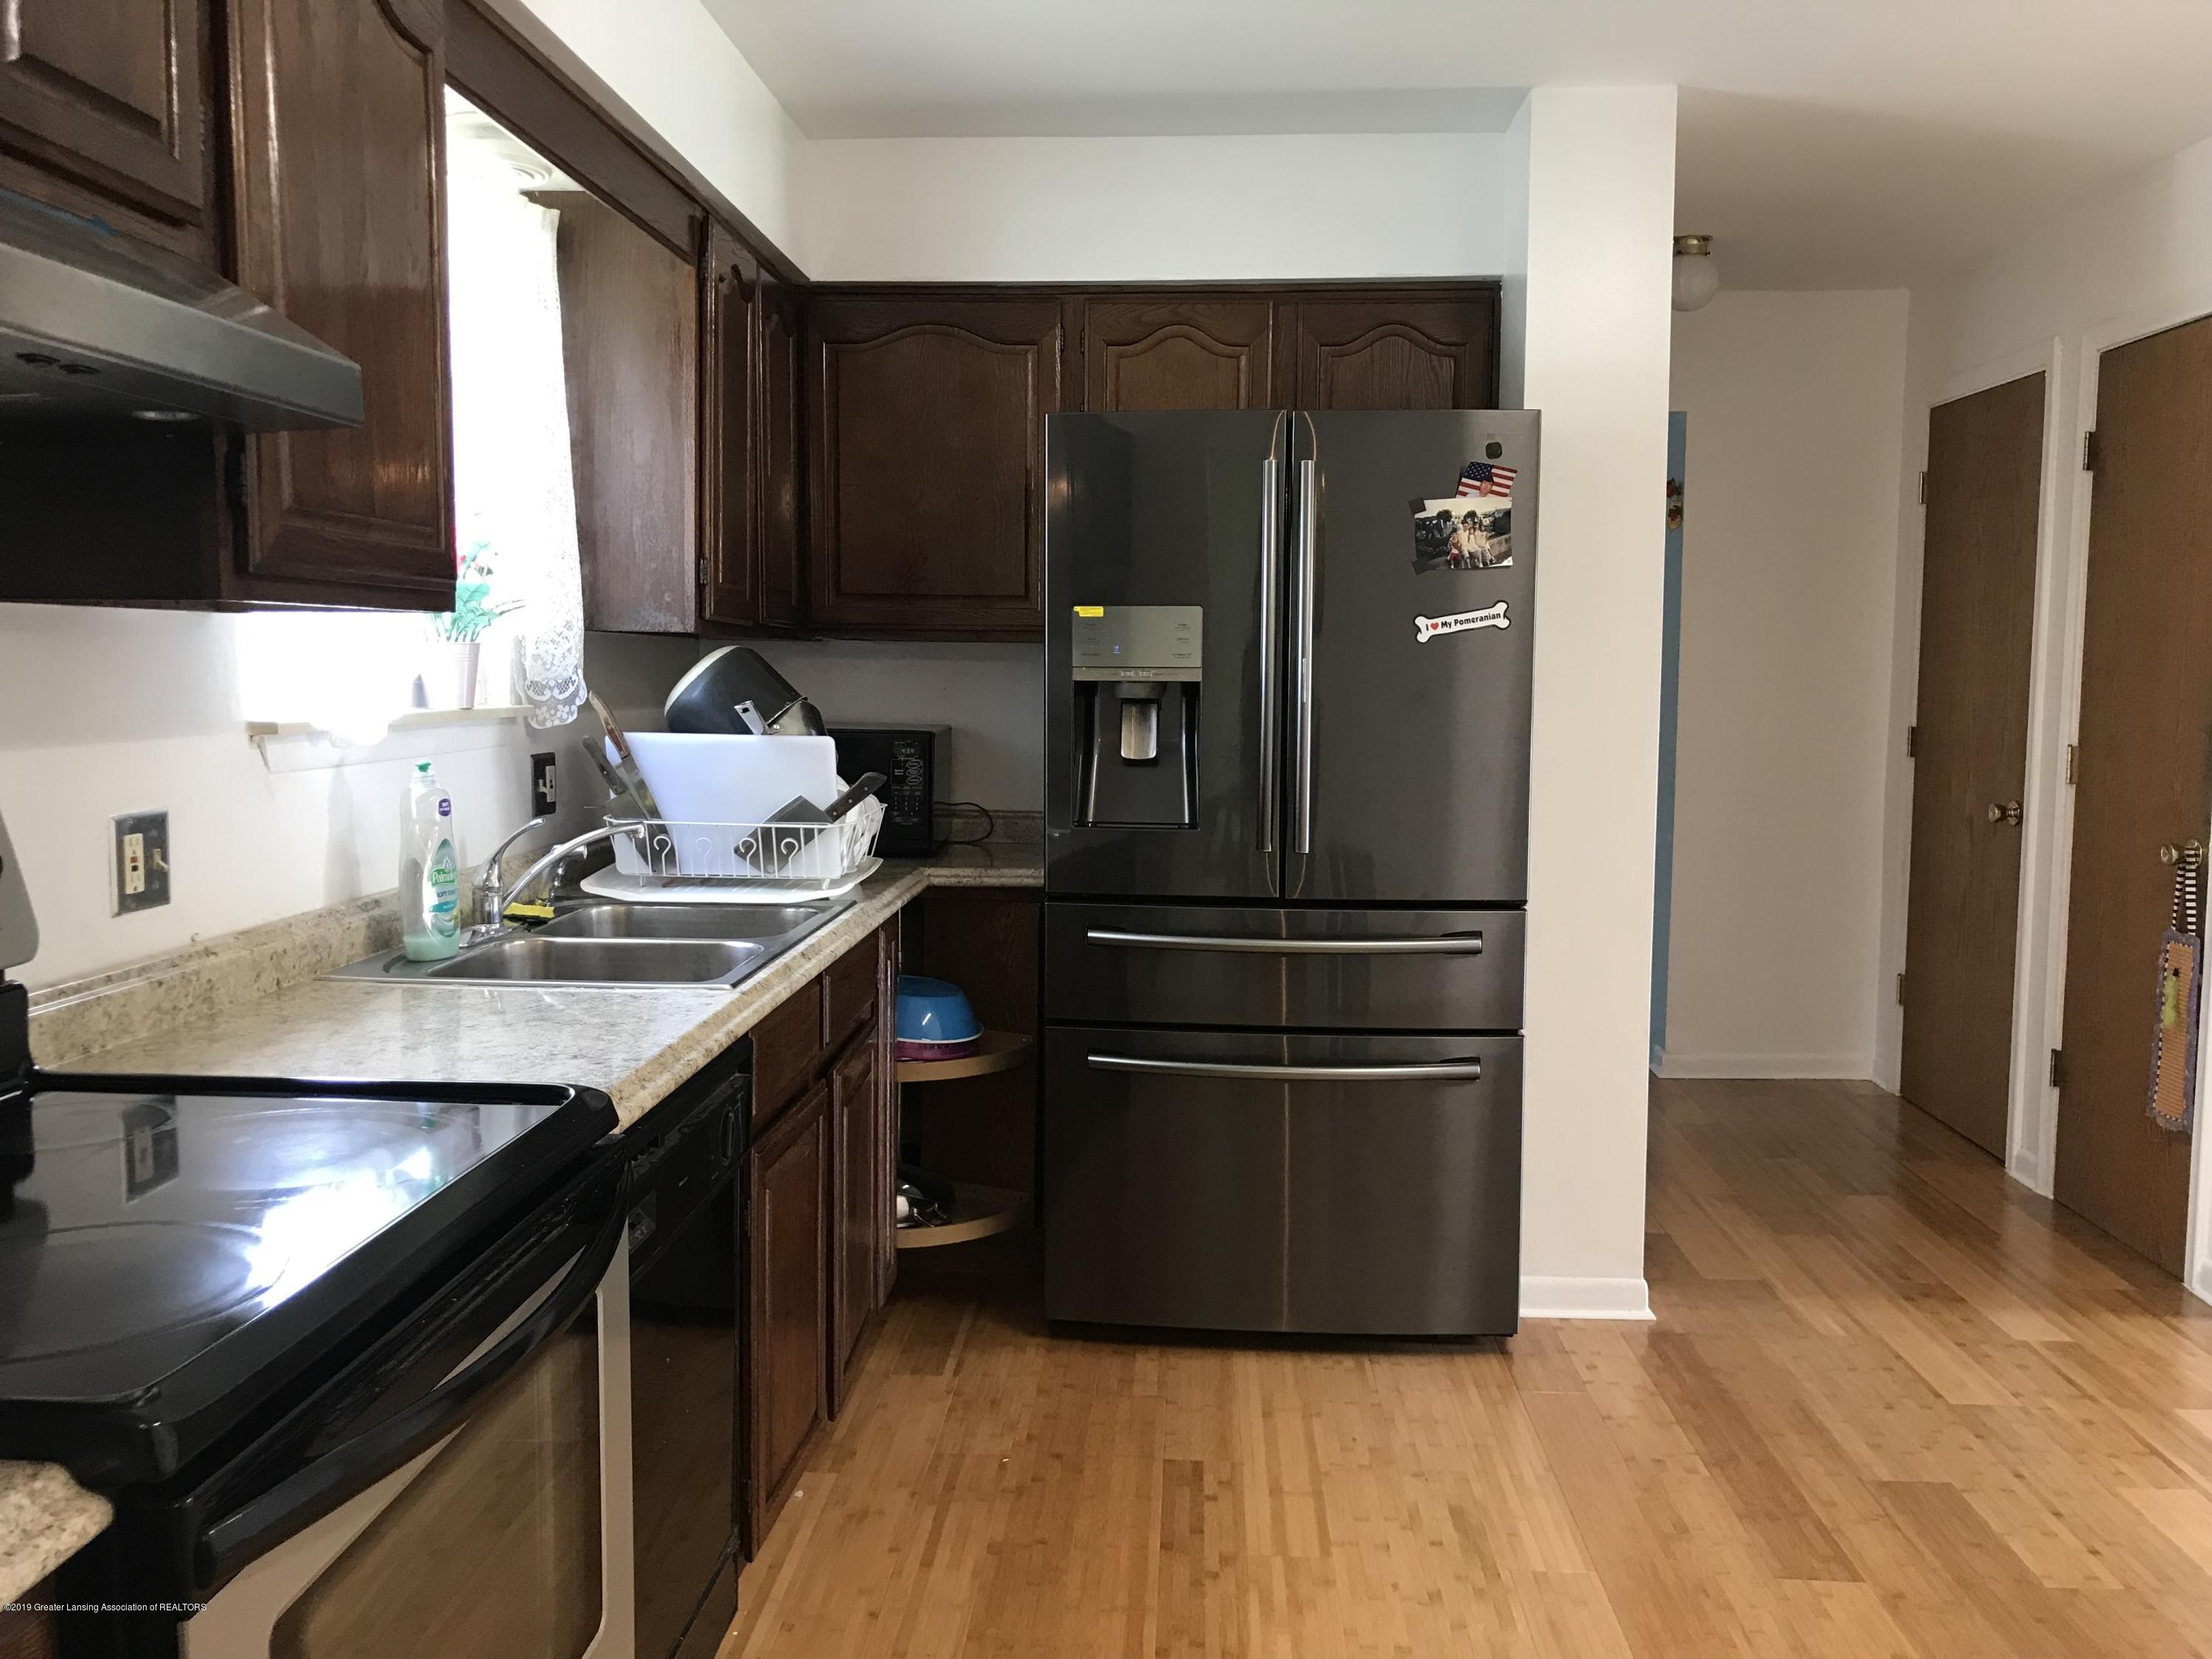 517 Harvest Ln - Kitchen with new Samsung refrigerator - 13